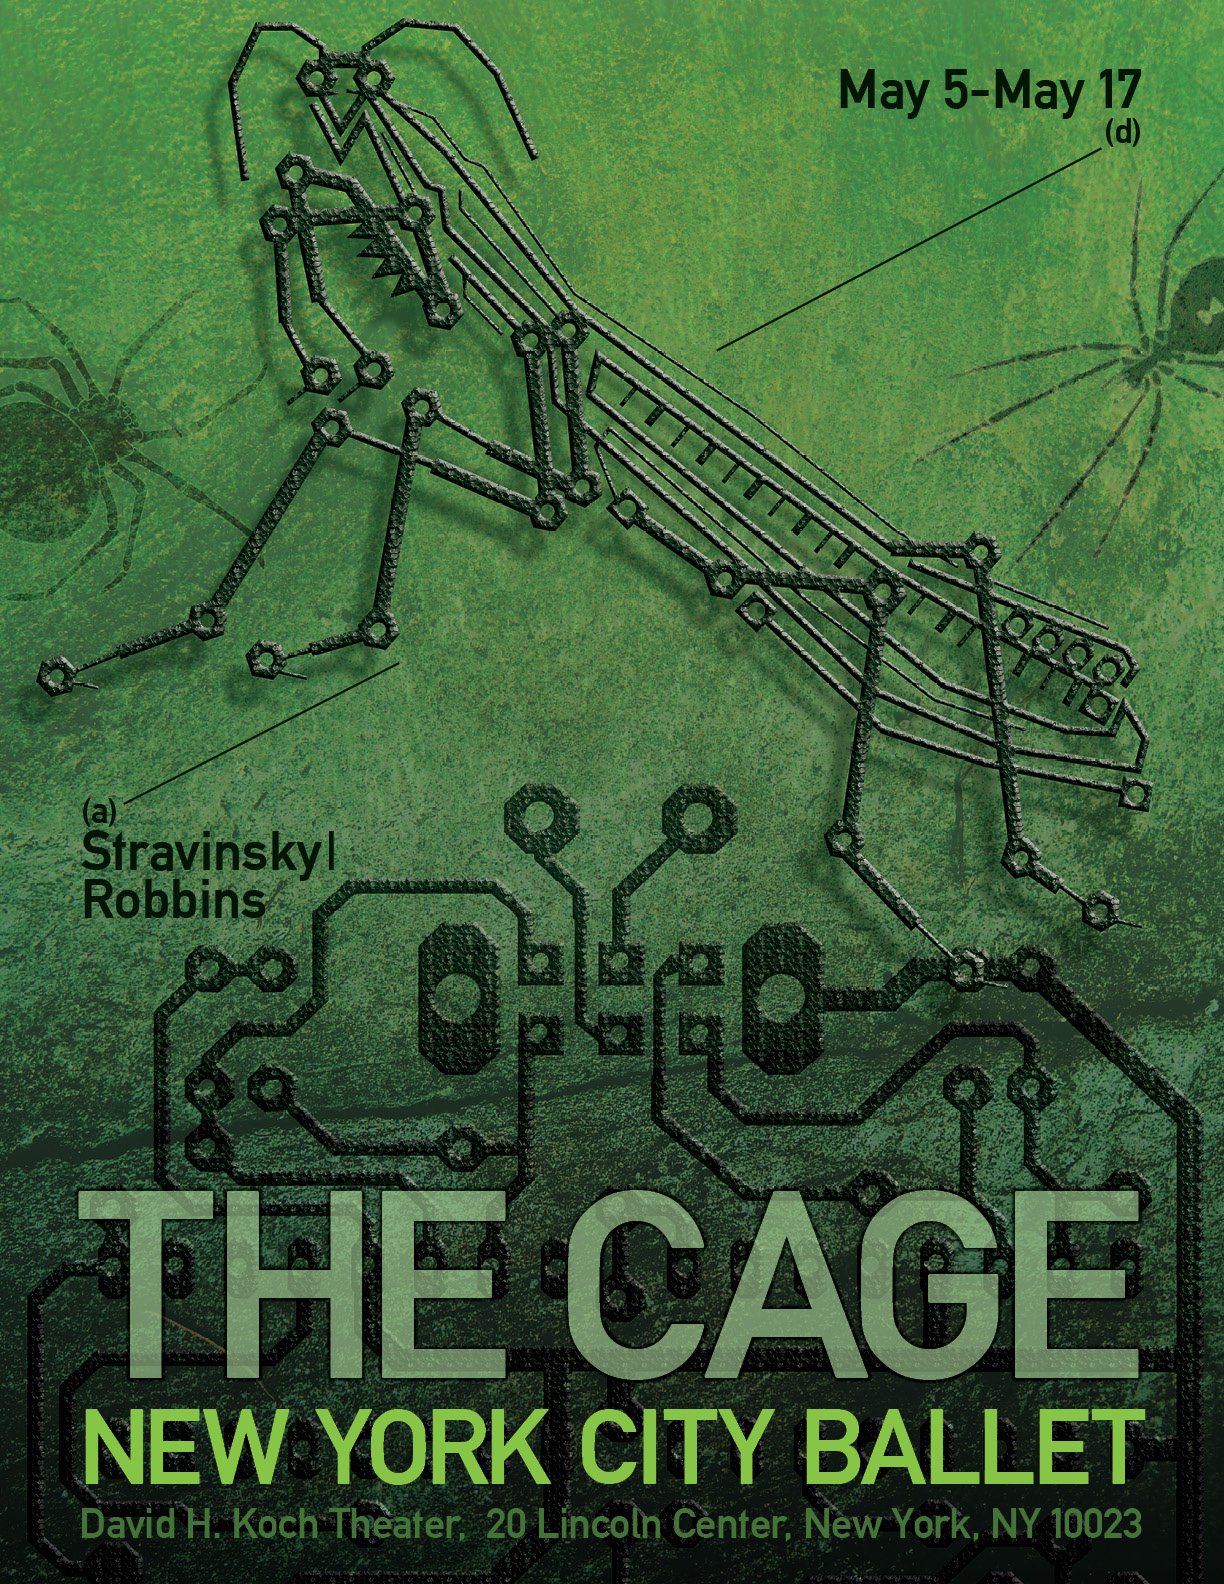 New York City Ballet poster The Cage